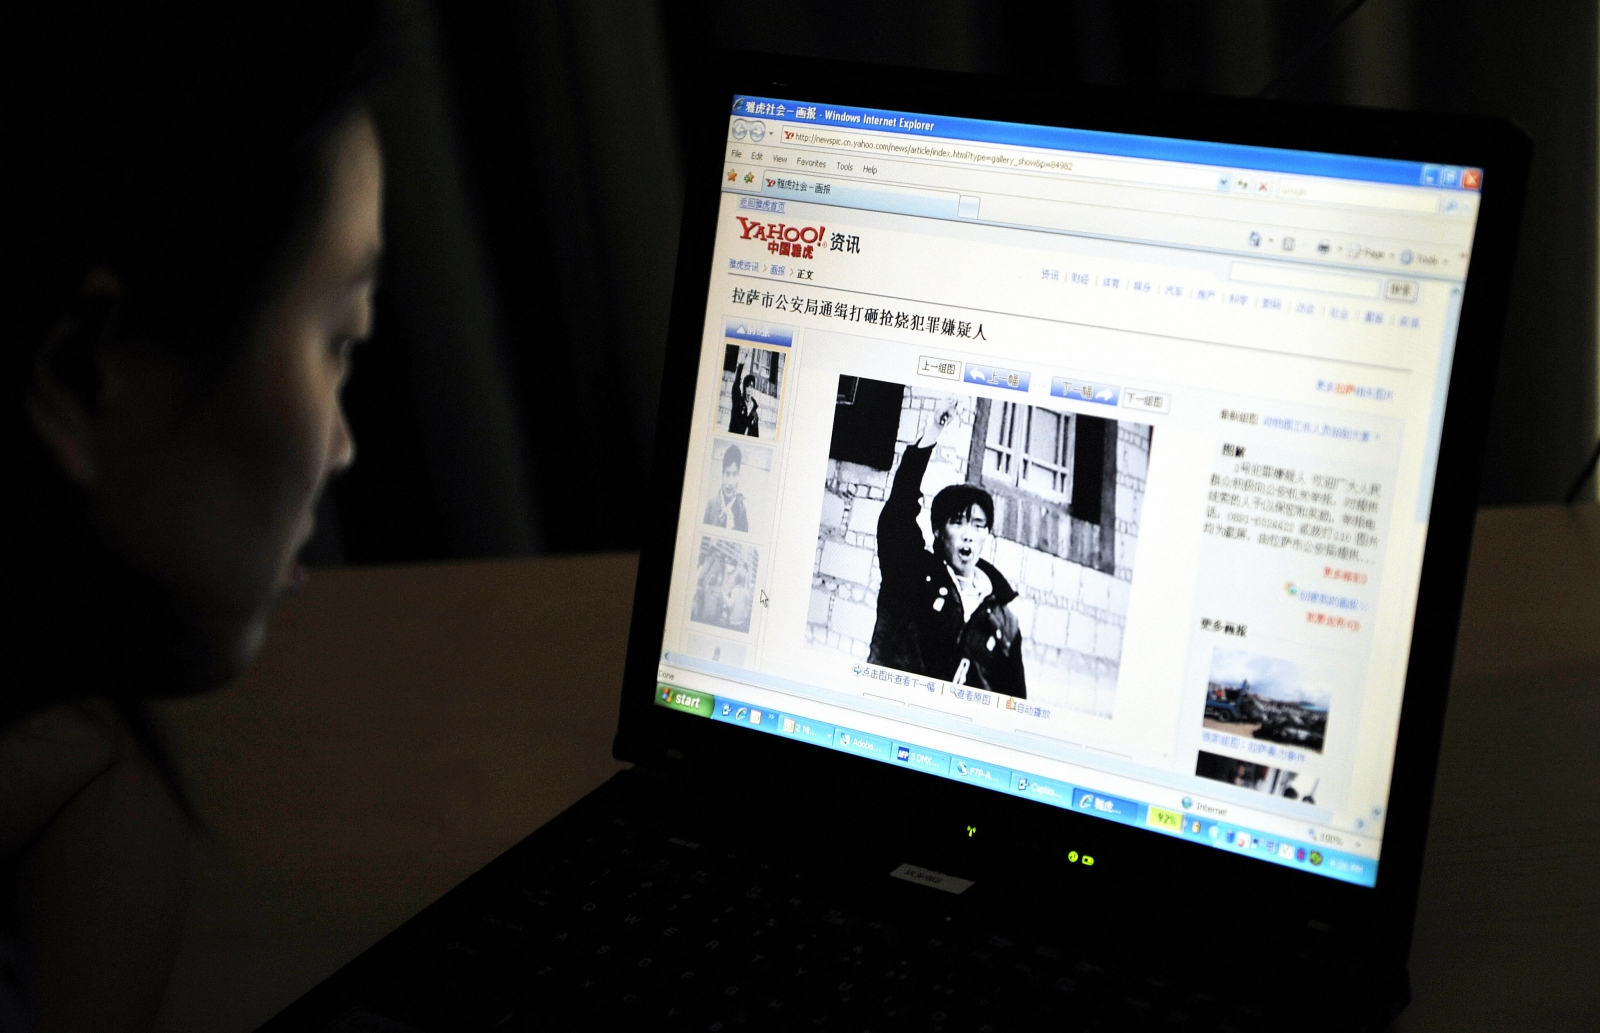 Yahoo China website customer